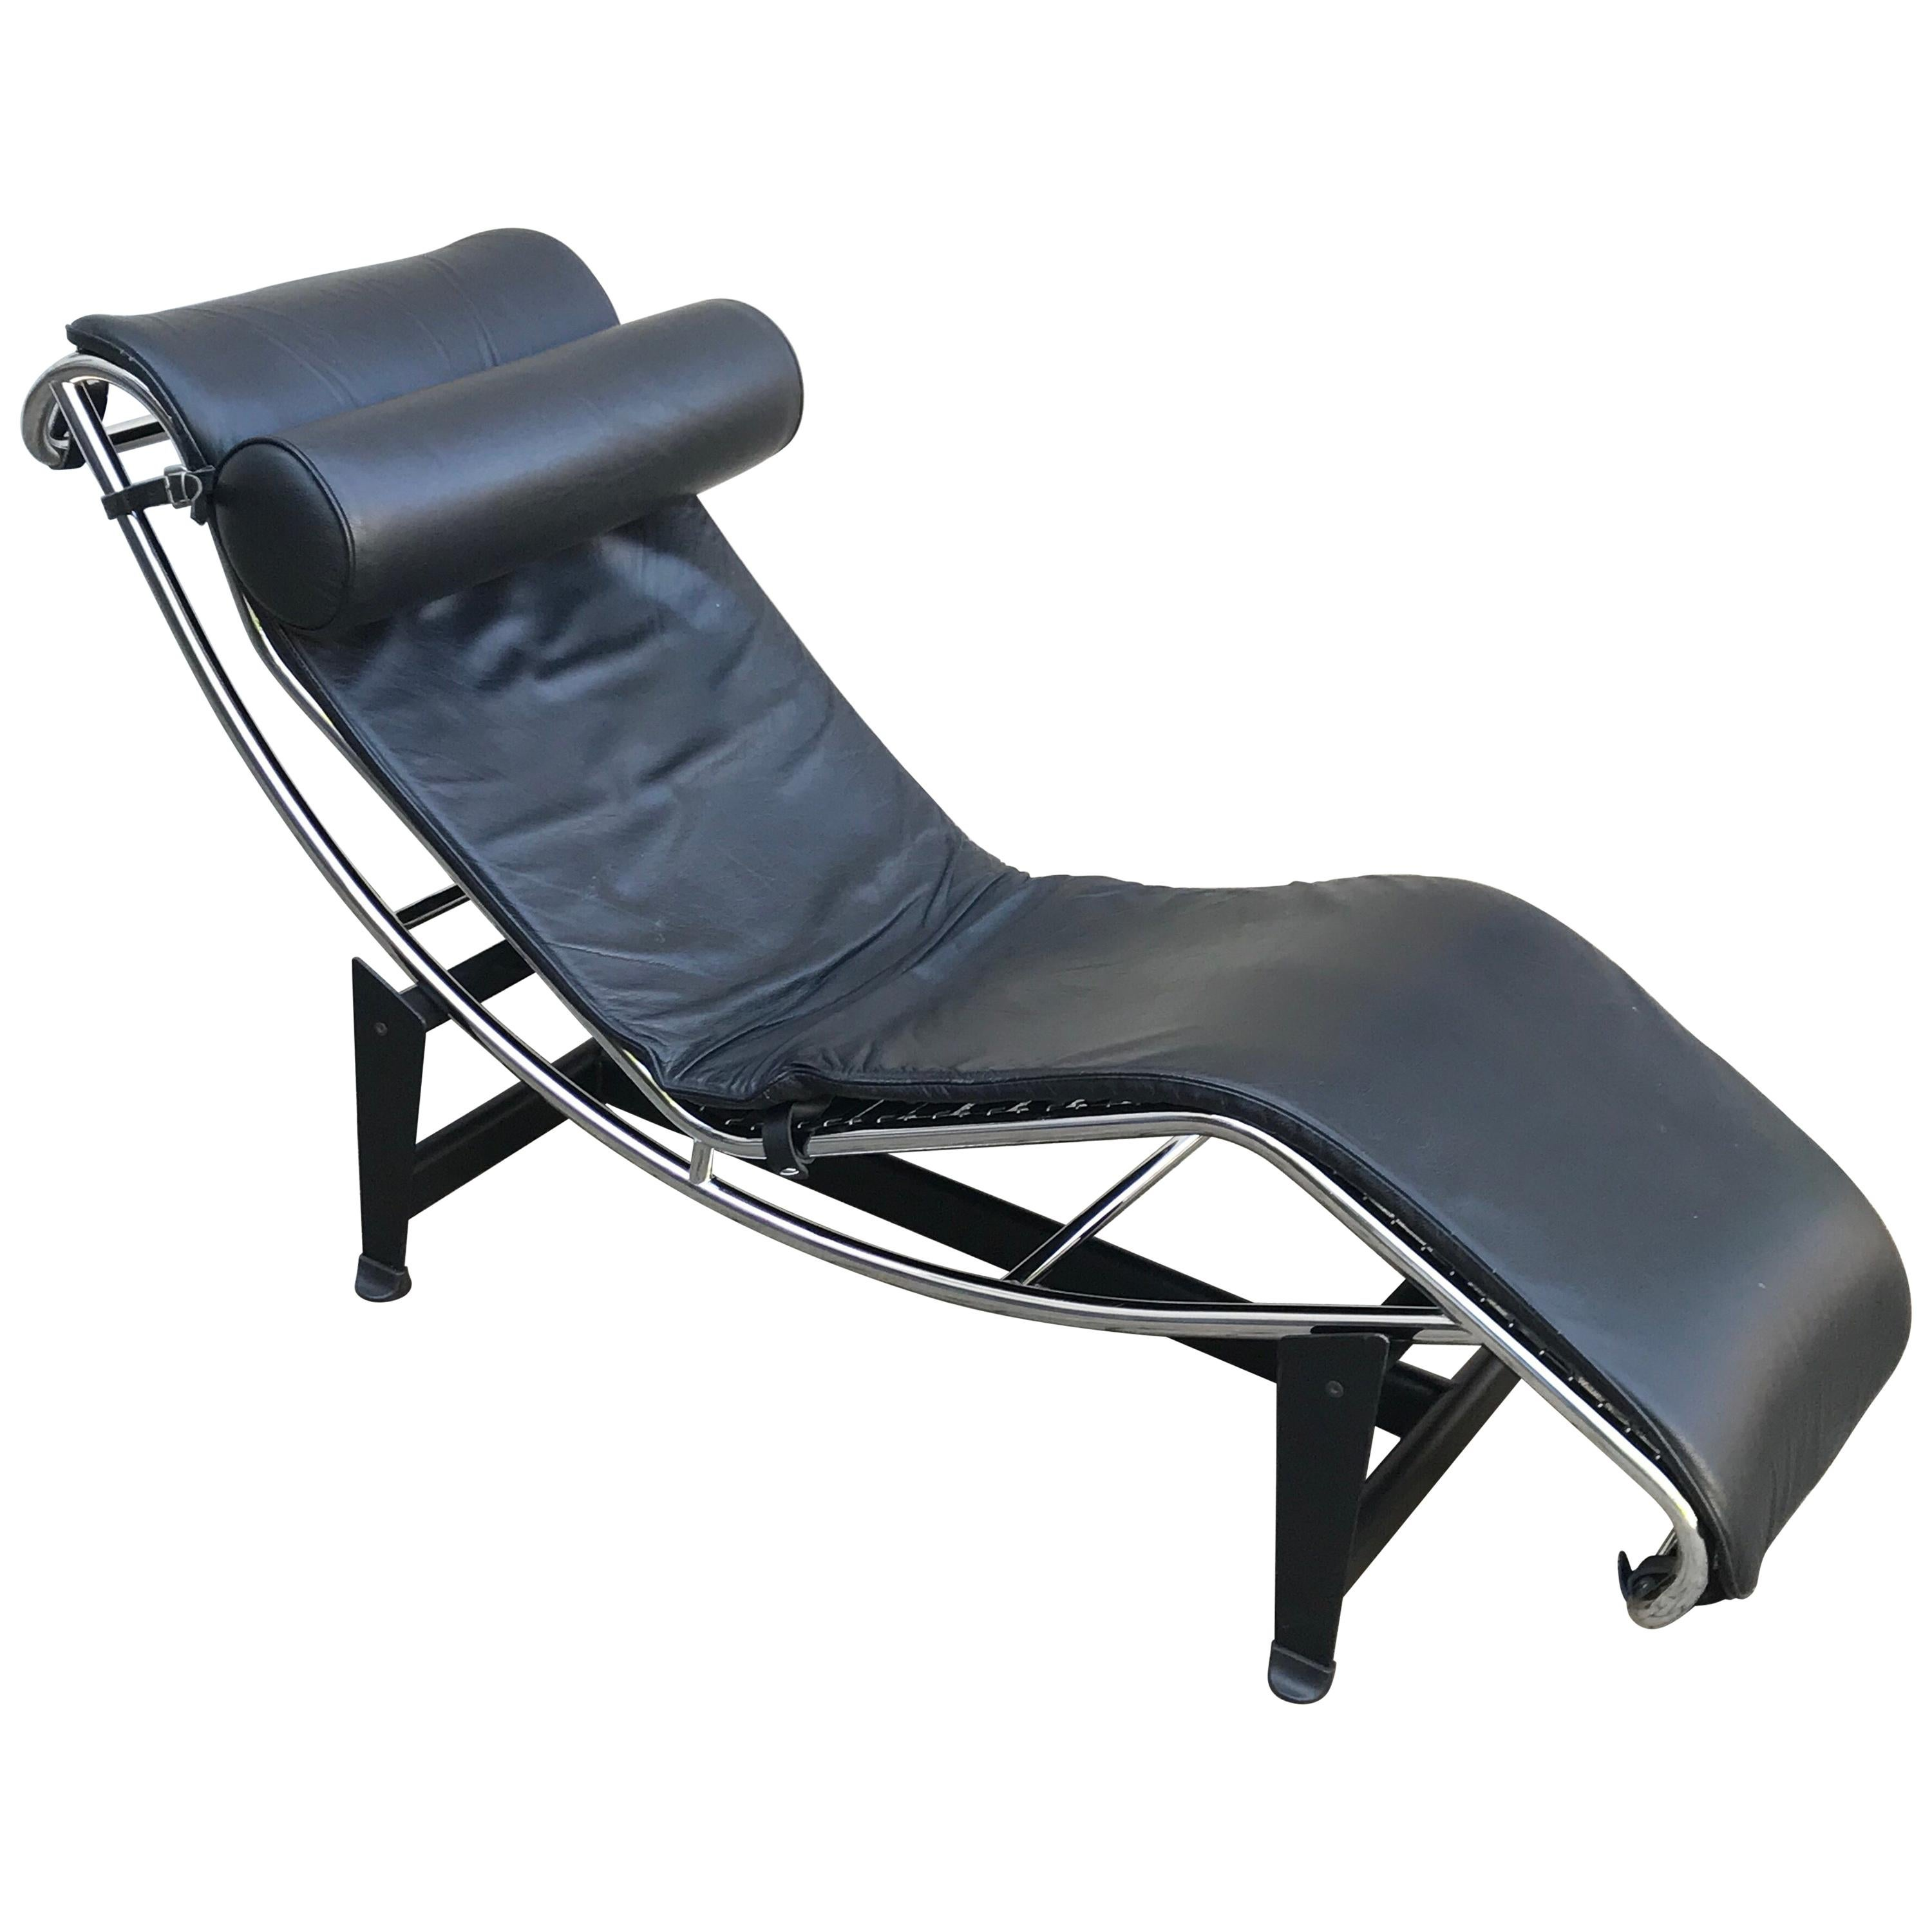 Exceptionnel Le Corbusier Modernist LC4 Chaise Lounge With Leather Cushion